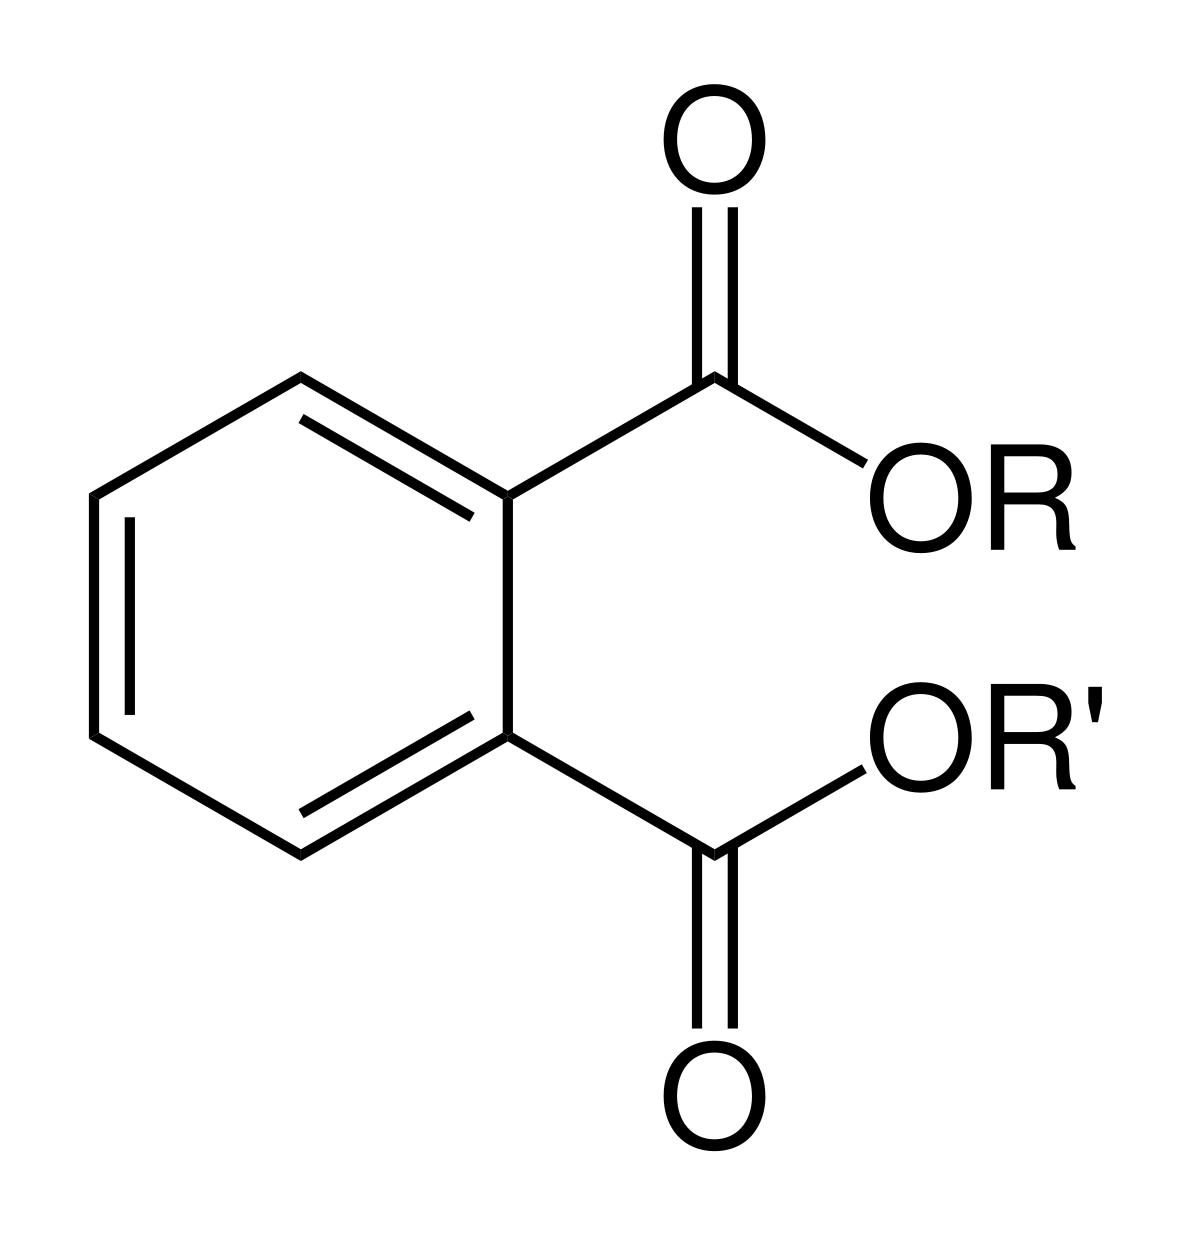 General chemical structure of phthalates (ortho).